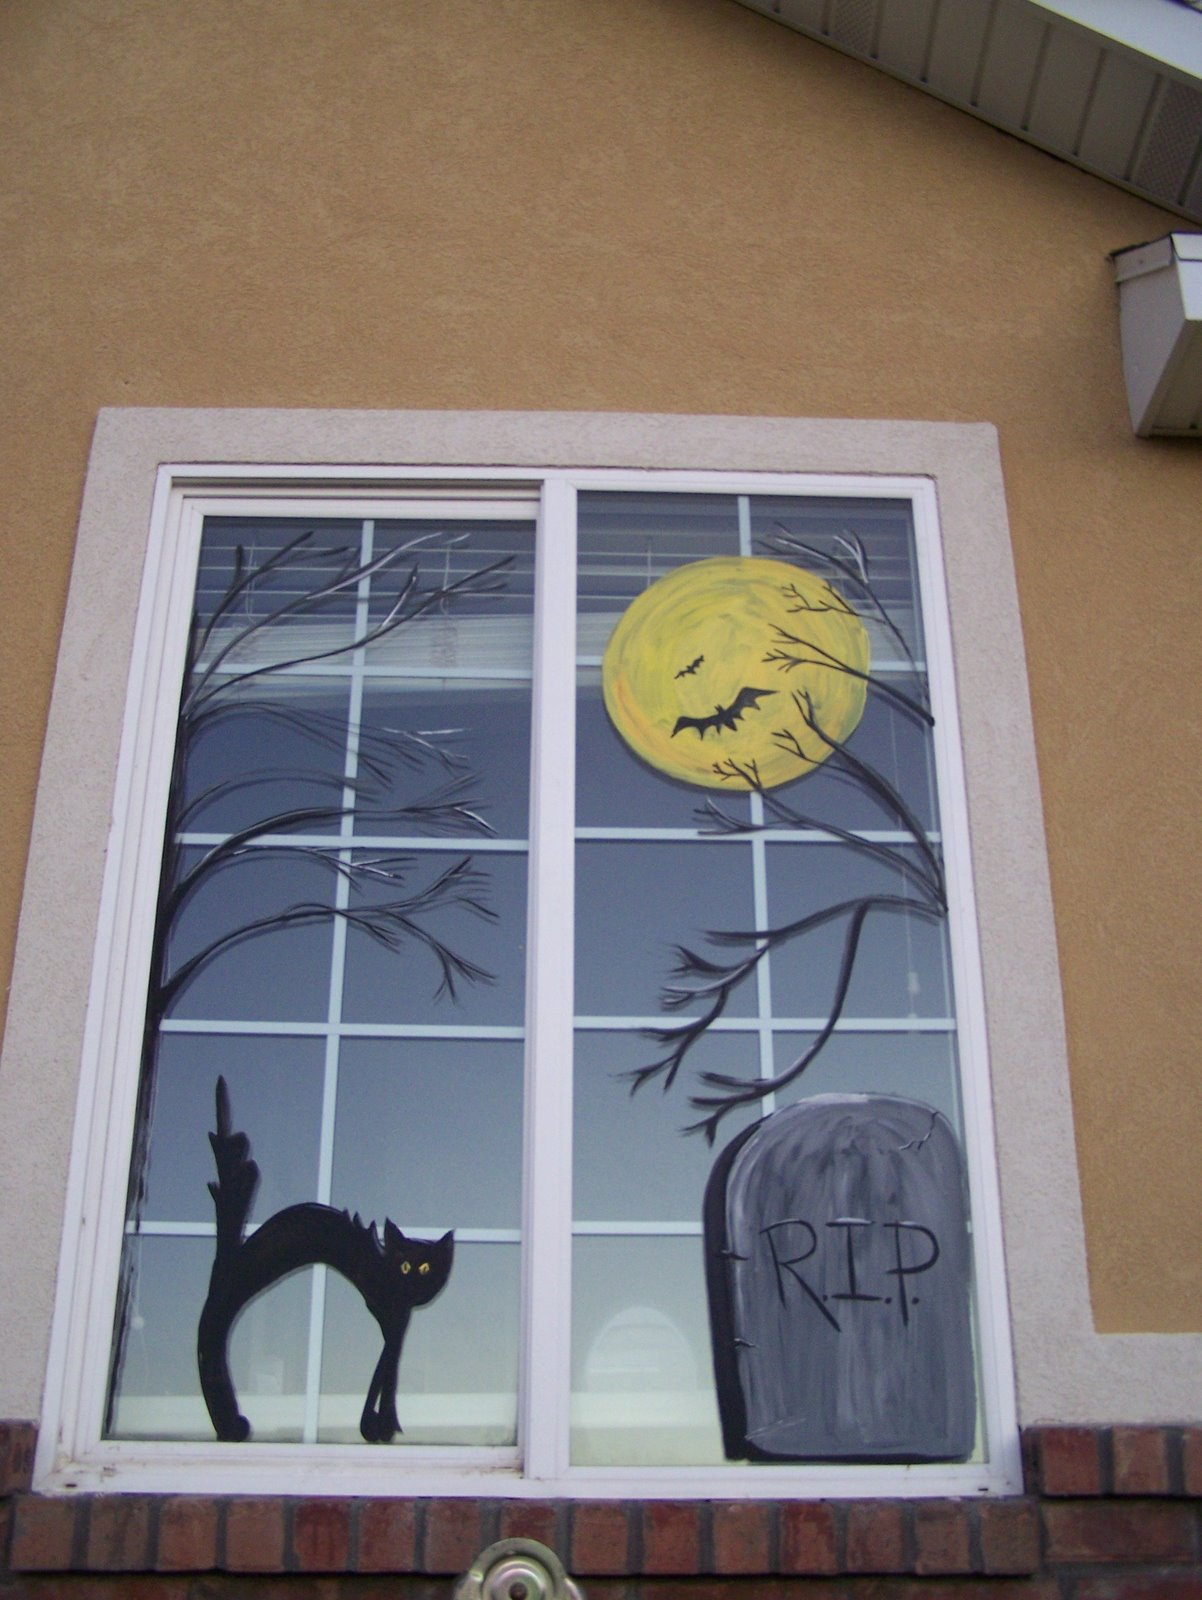 Painted Halloween windows & 10 Spooky Window Decorations to Get Your Home Ready for Halloween ...